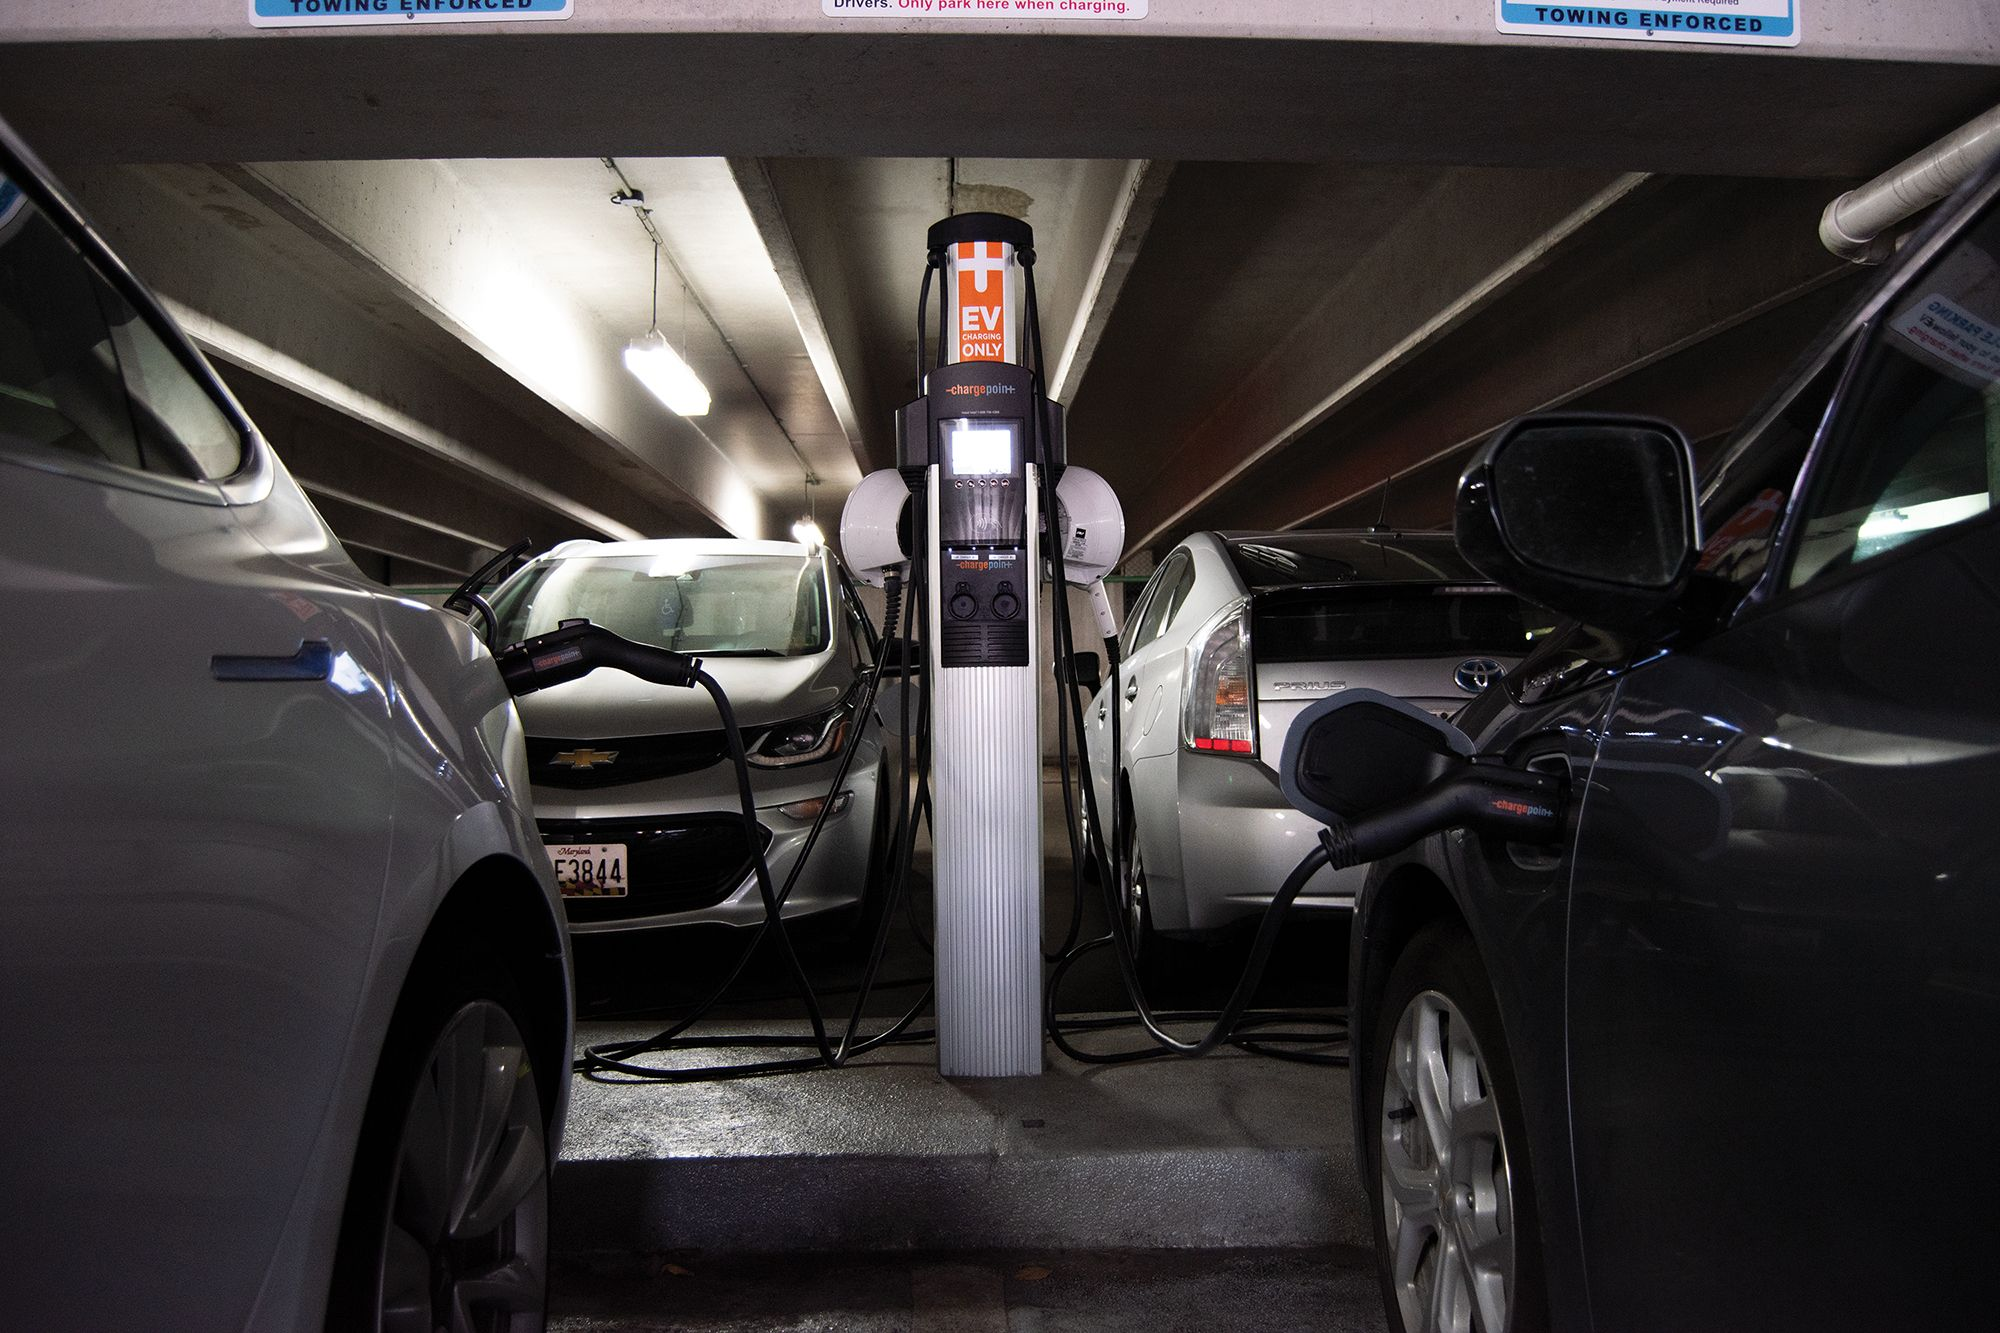 Electric Car Charging Stations Locations >> Umd Has Over 30 Spots To Charge Electric Cars But They Re